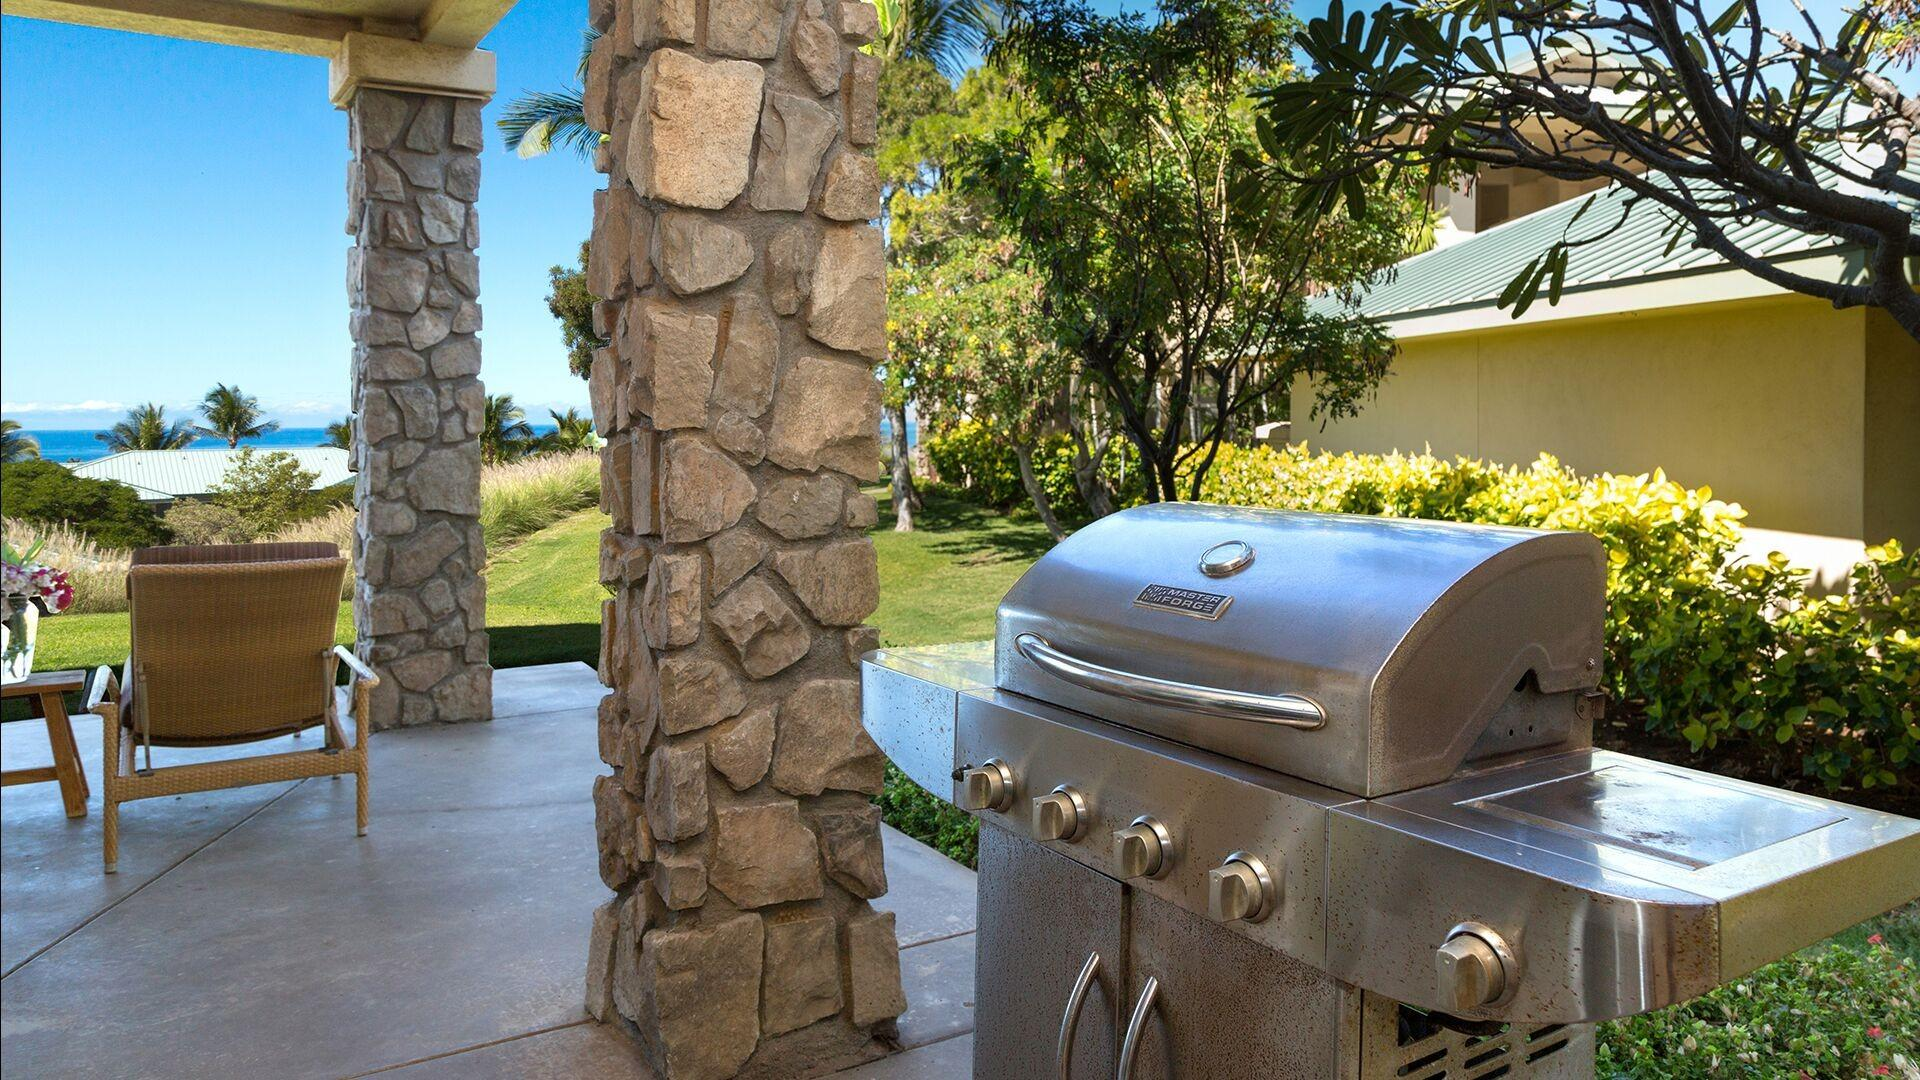 A private BBQ is provided for your use. Enjoy the ocean views while you prepare your favorite meal.